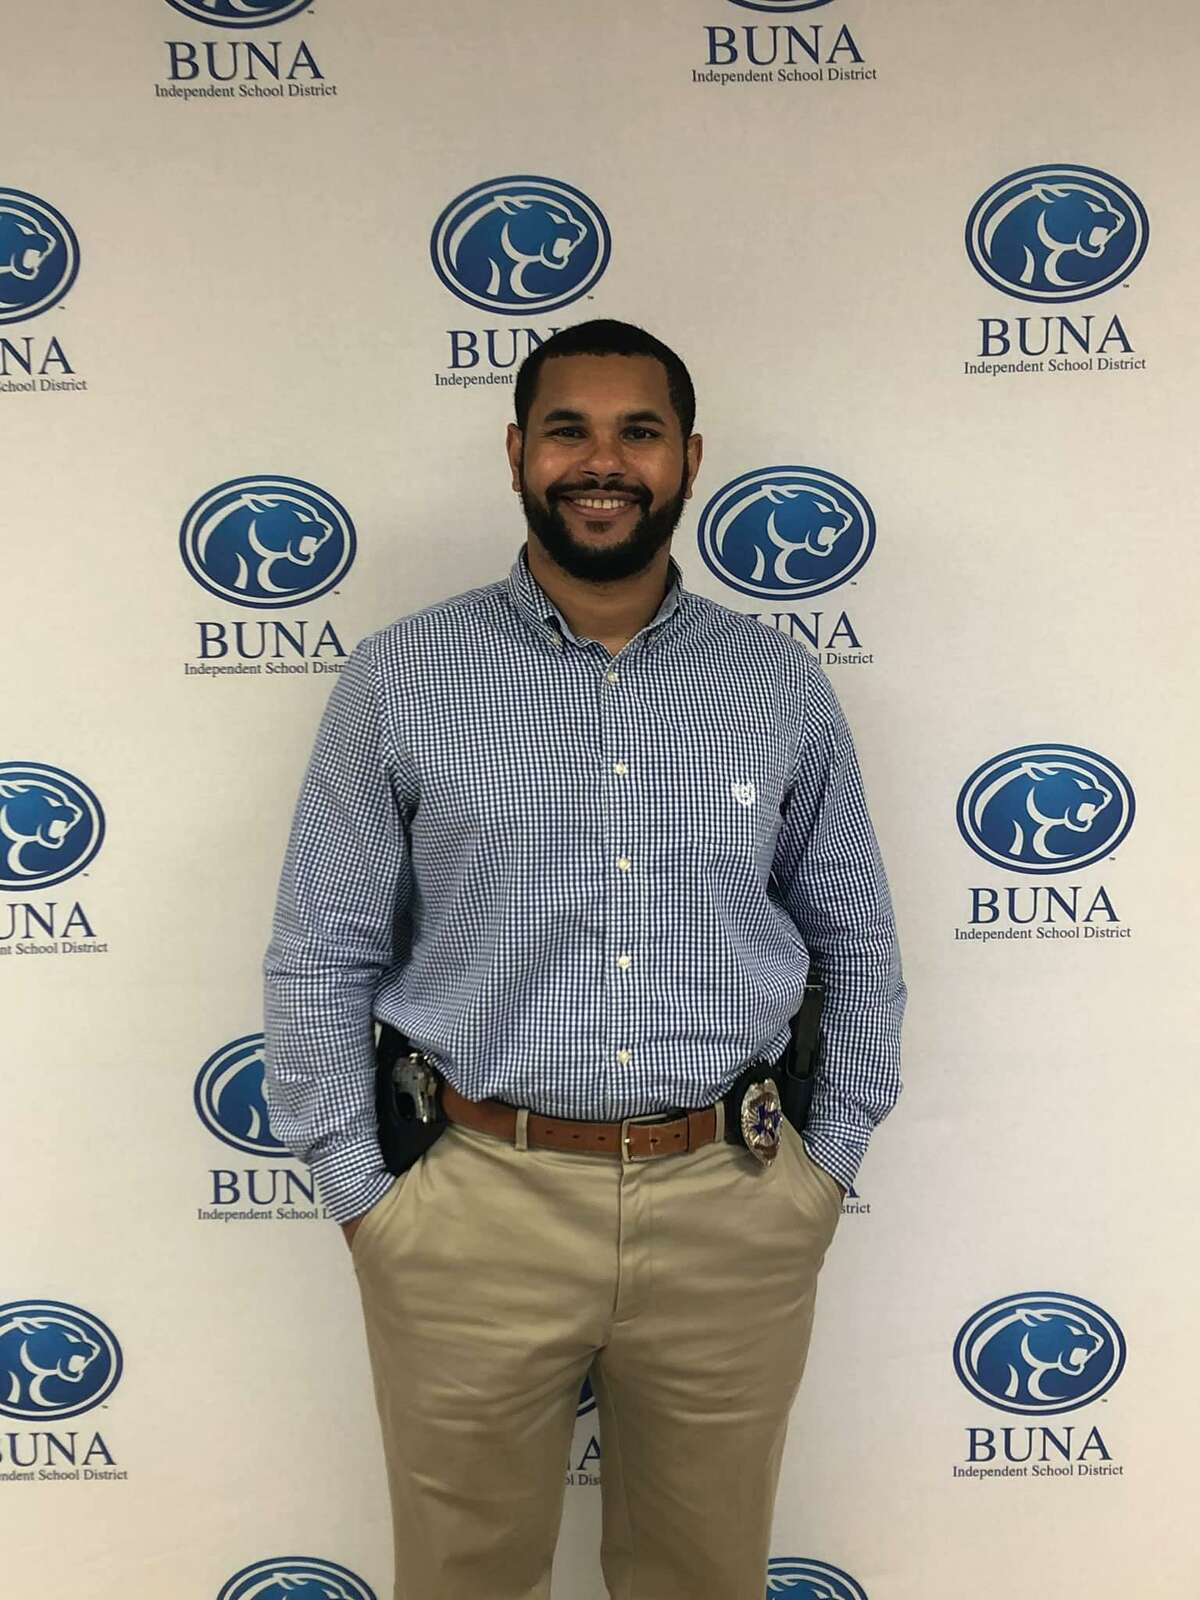 Anthony Smith was recently announced as the new Police Chief for Buna Independent School District.